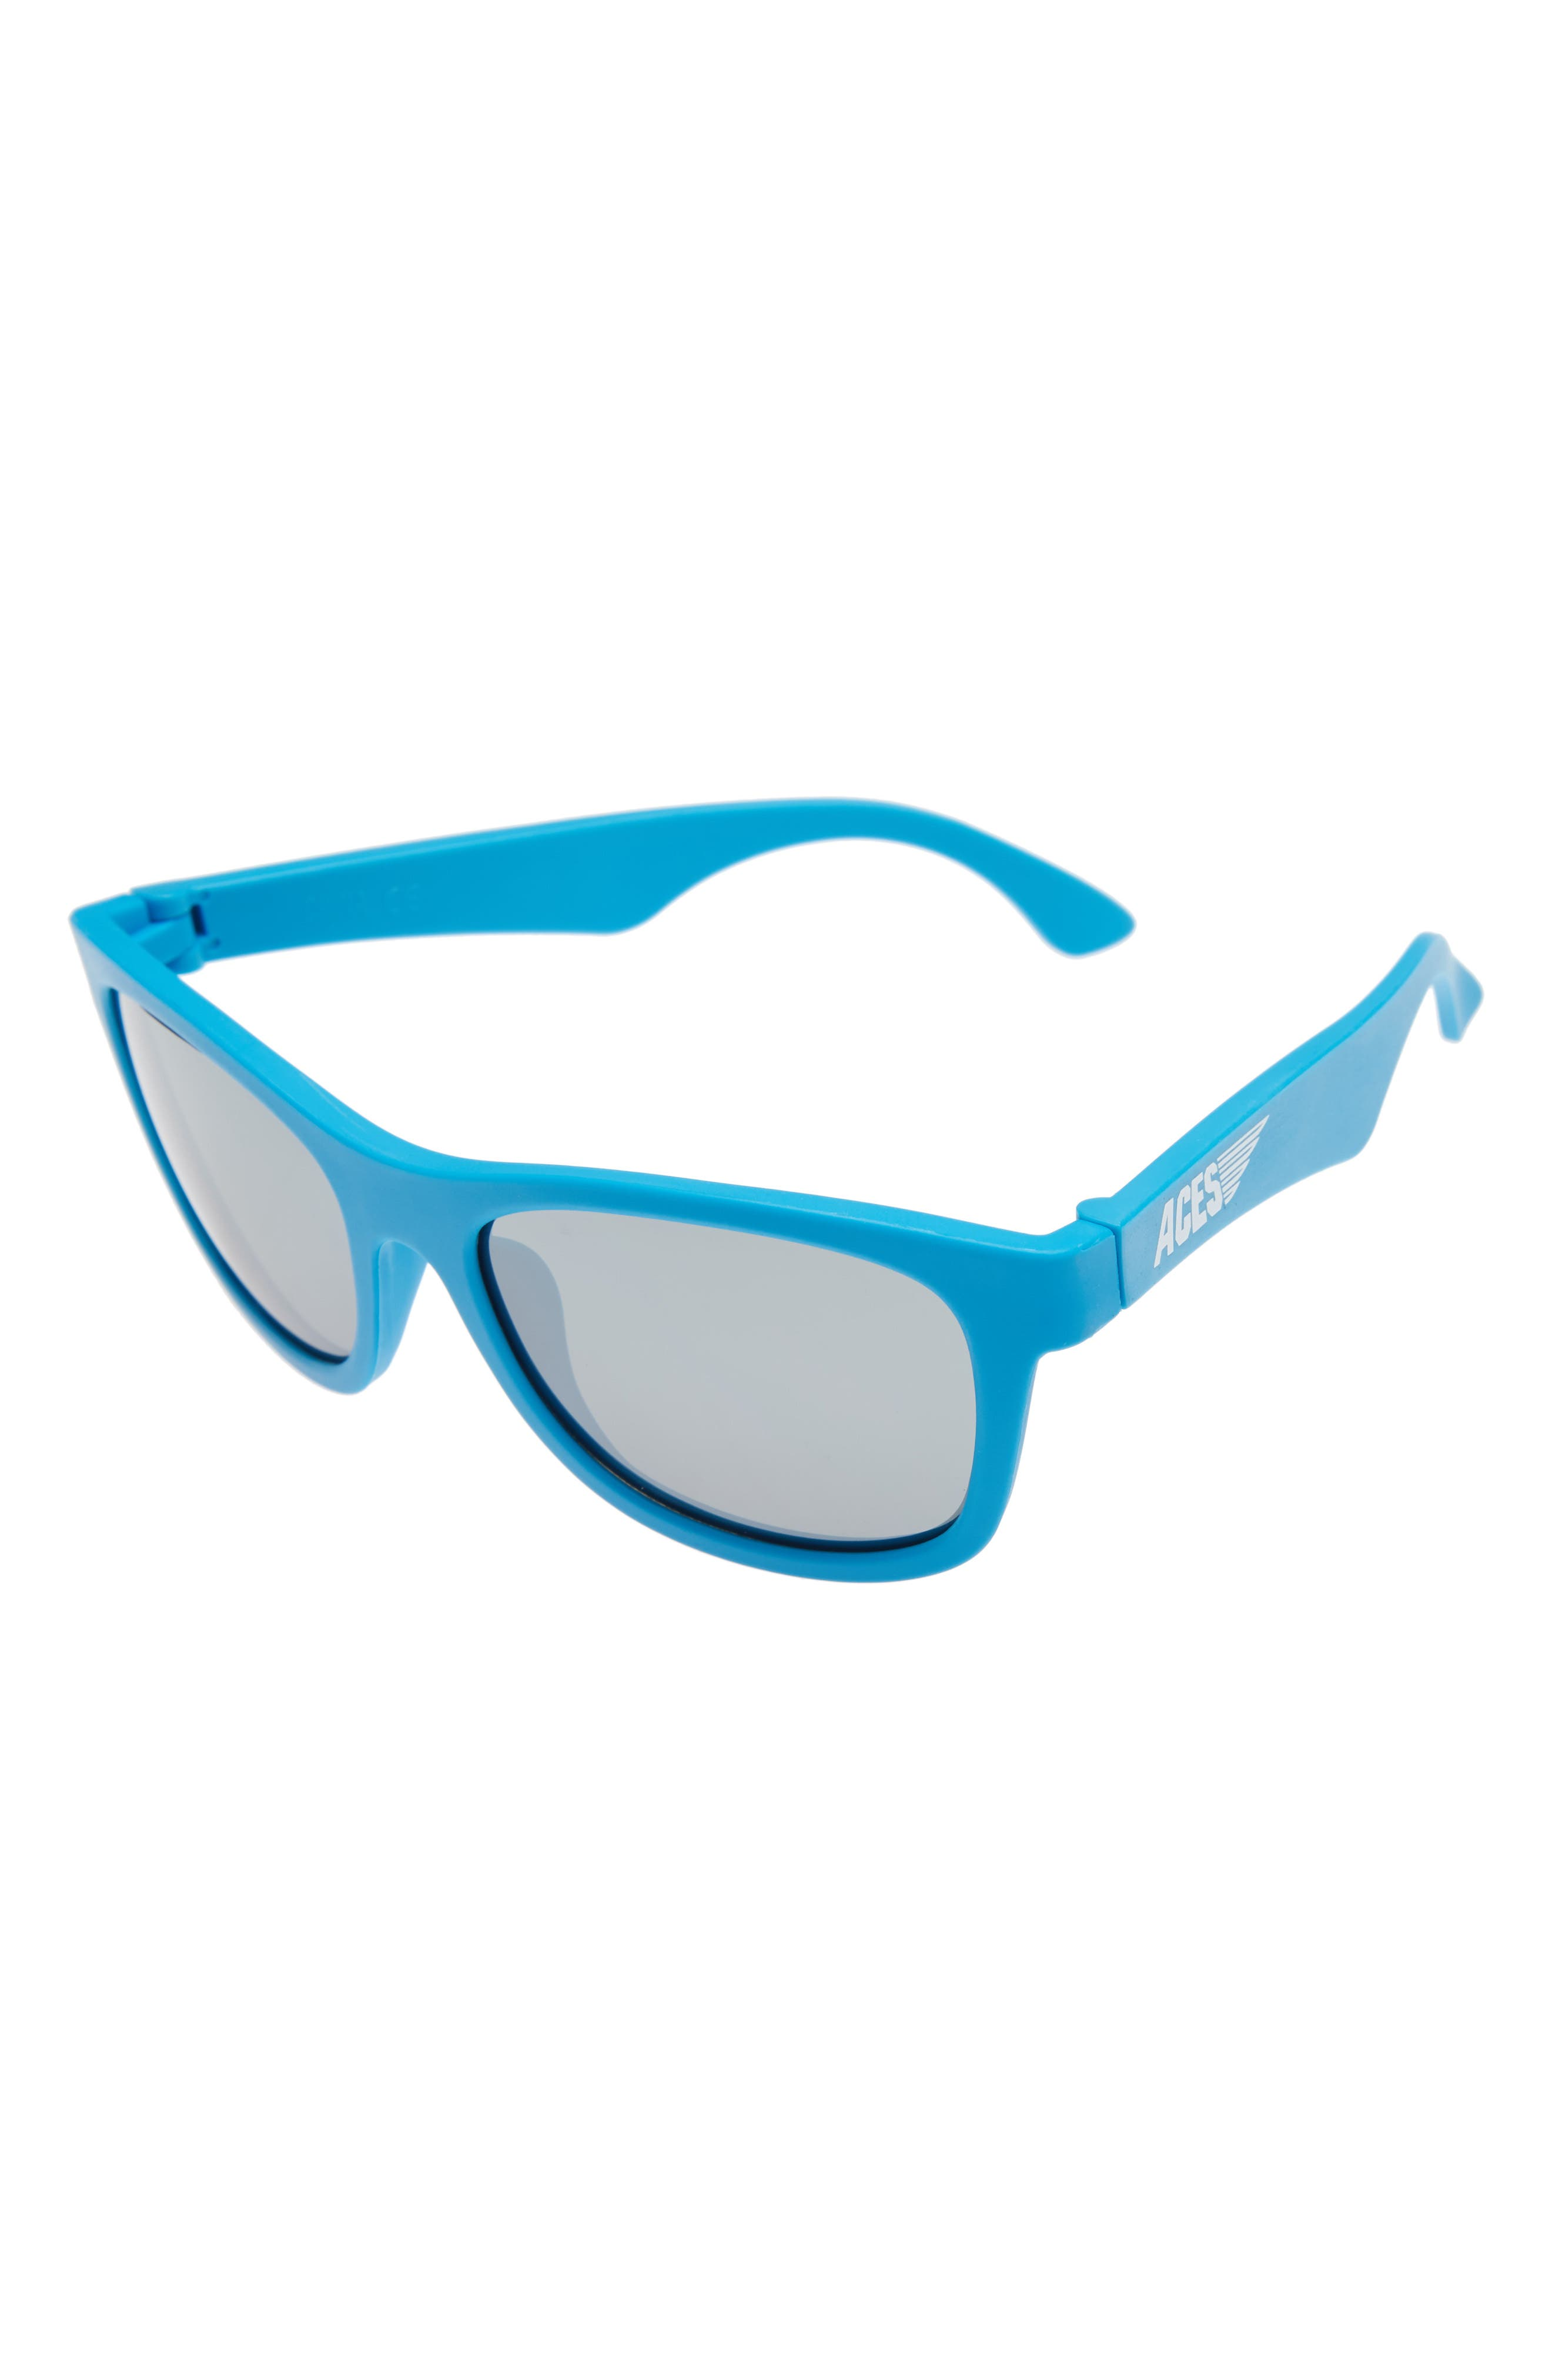 Main Image - Babiators Aces Navigator Sunglasses (Big Kid)